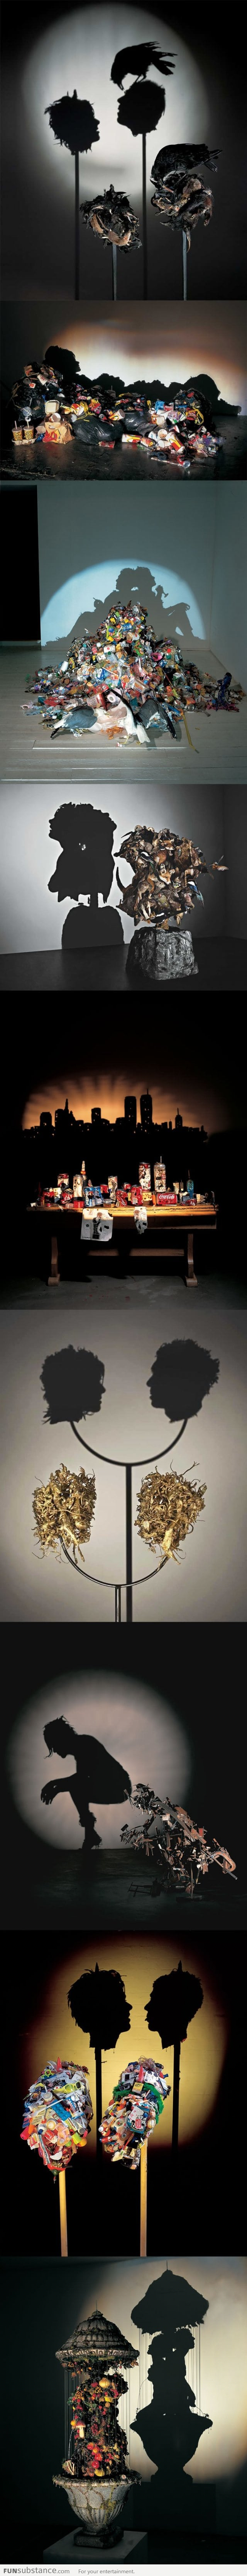 Brilliant shadow art